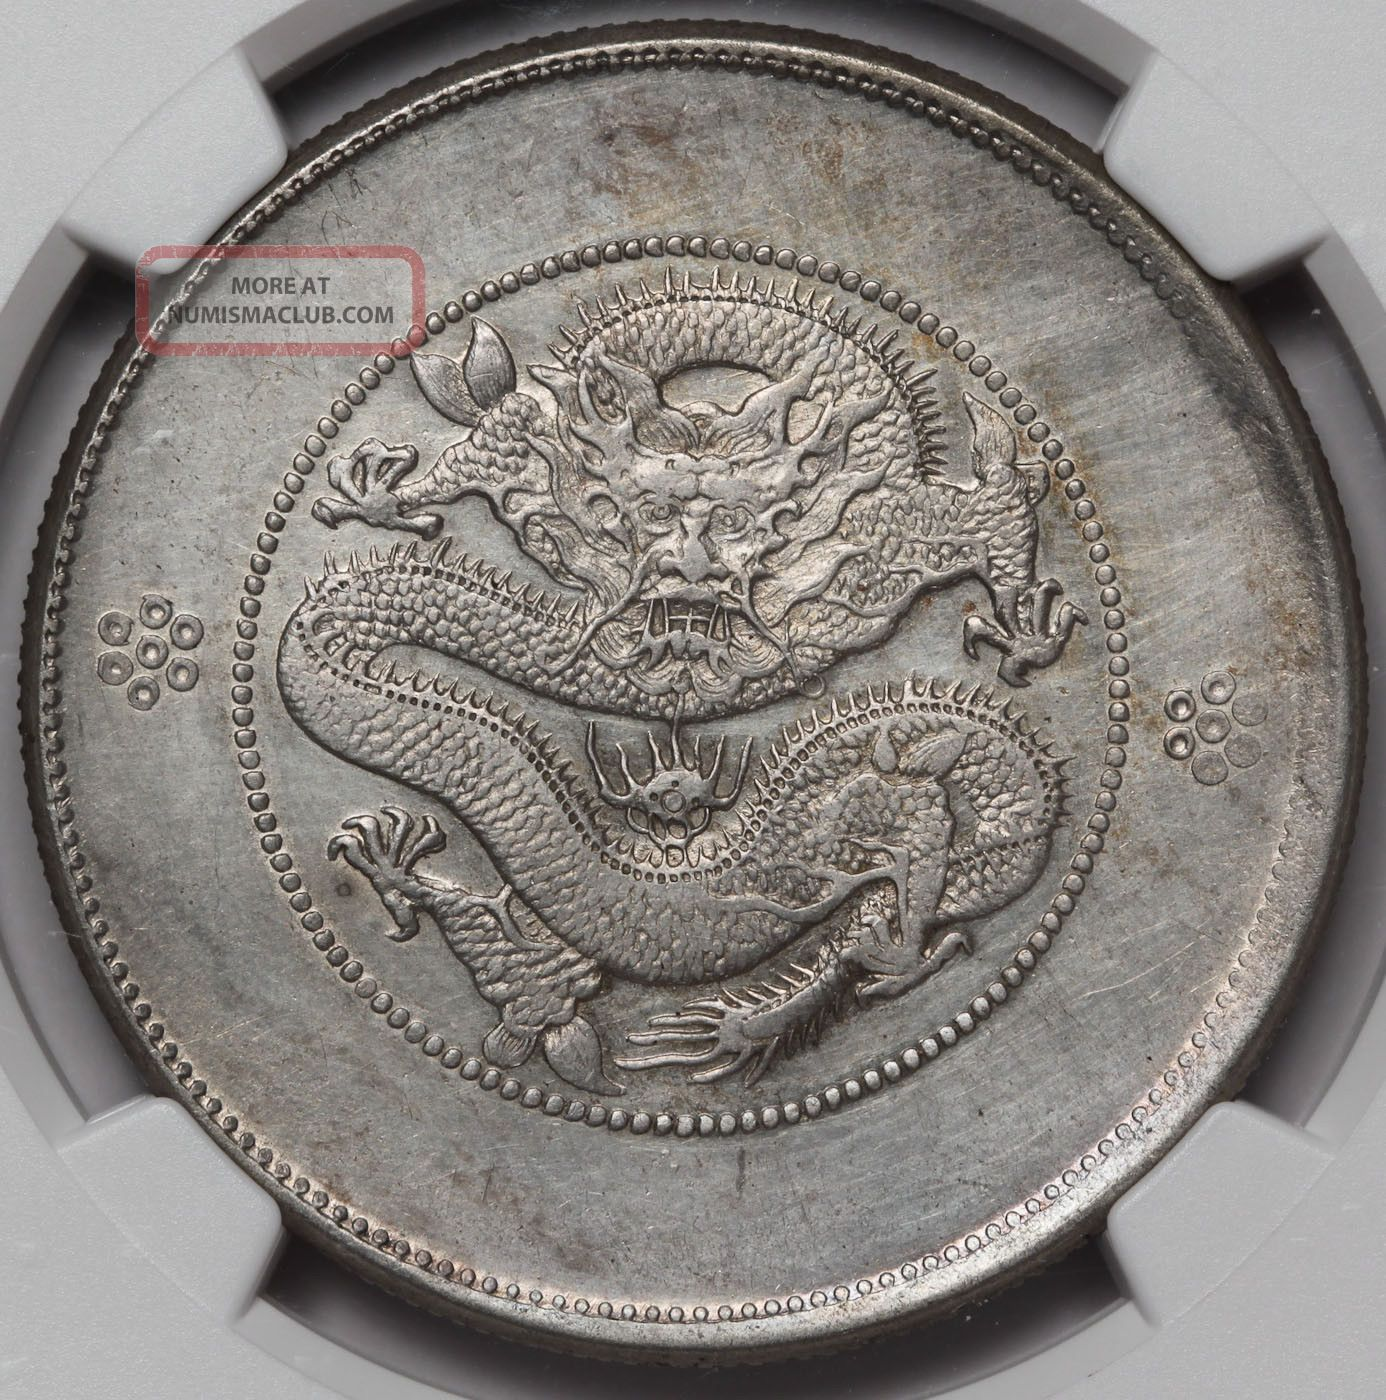 1911 China Yunnan 1 Dollar Silver Dragon Coin L Amp M 421 Y 258 1 Ngc Au 7 2 Mace